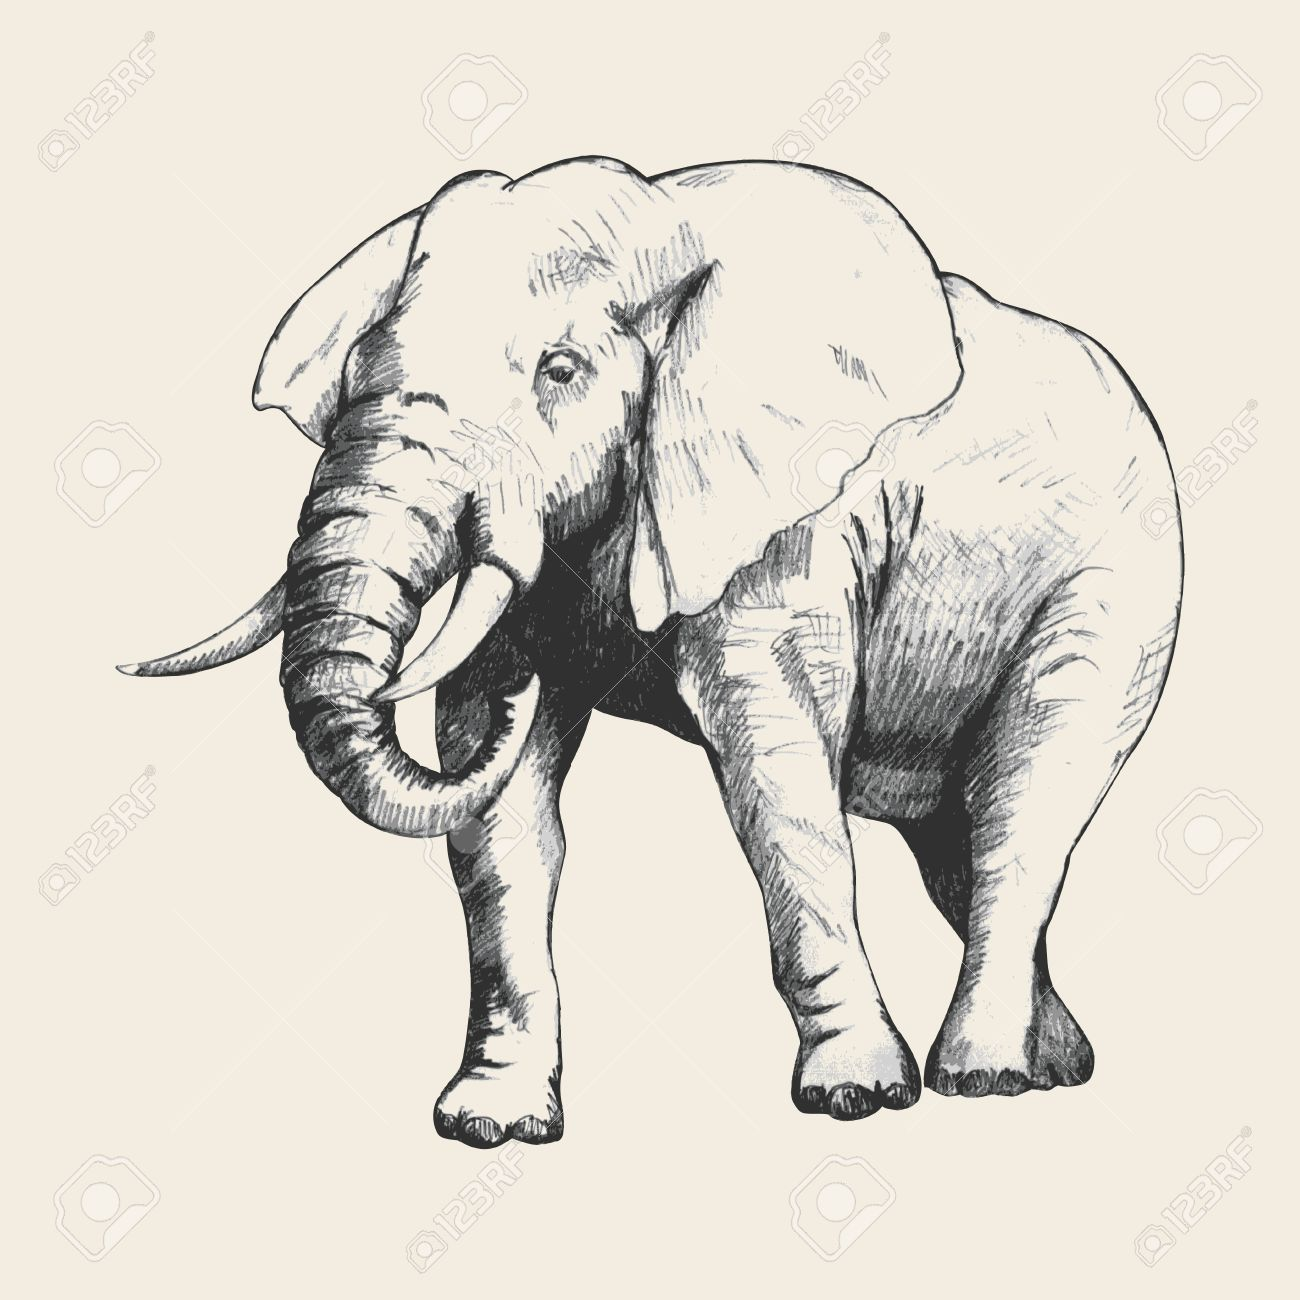 Pencil sketch of an elephant traced in adobe illustrator stock vector 39056486